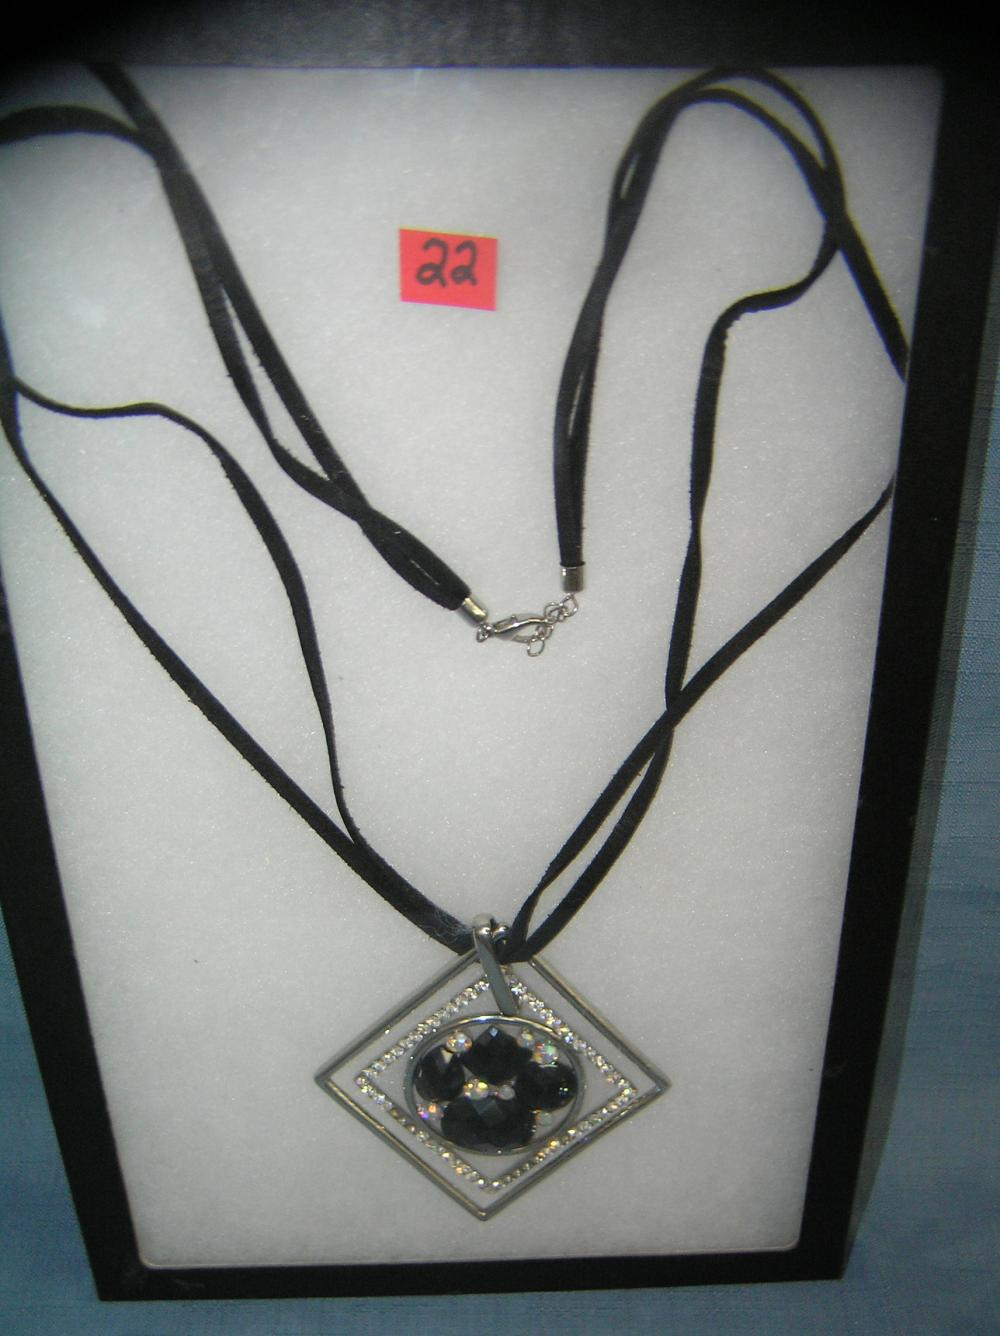 COSTUME JEWELRY NECKLACE WITH AN UNUSUAL PENDANT